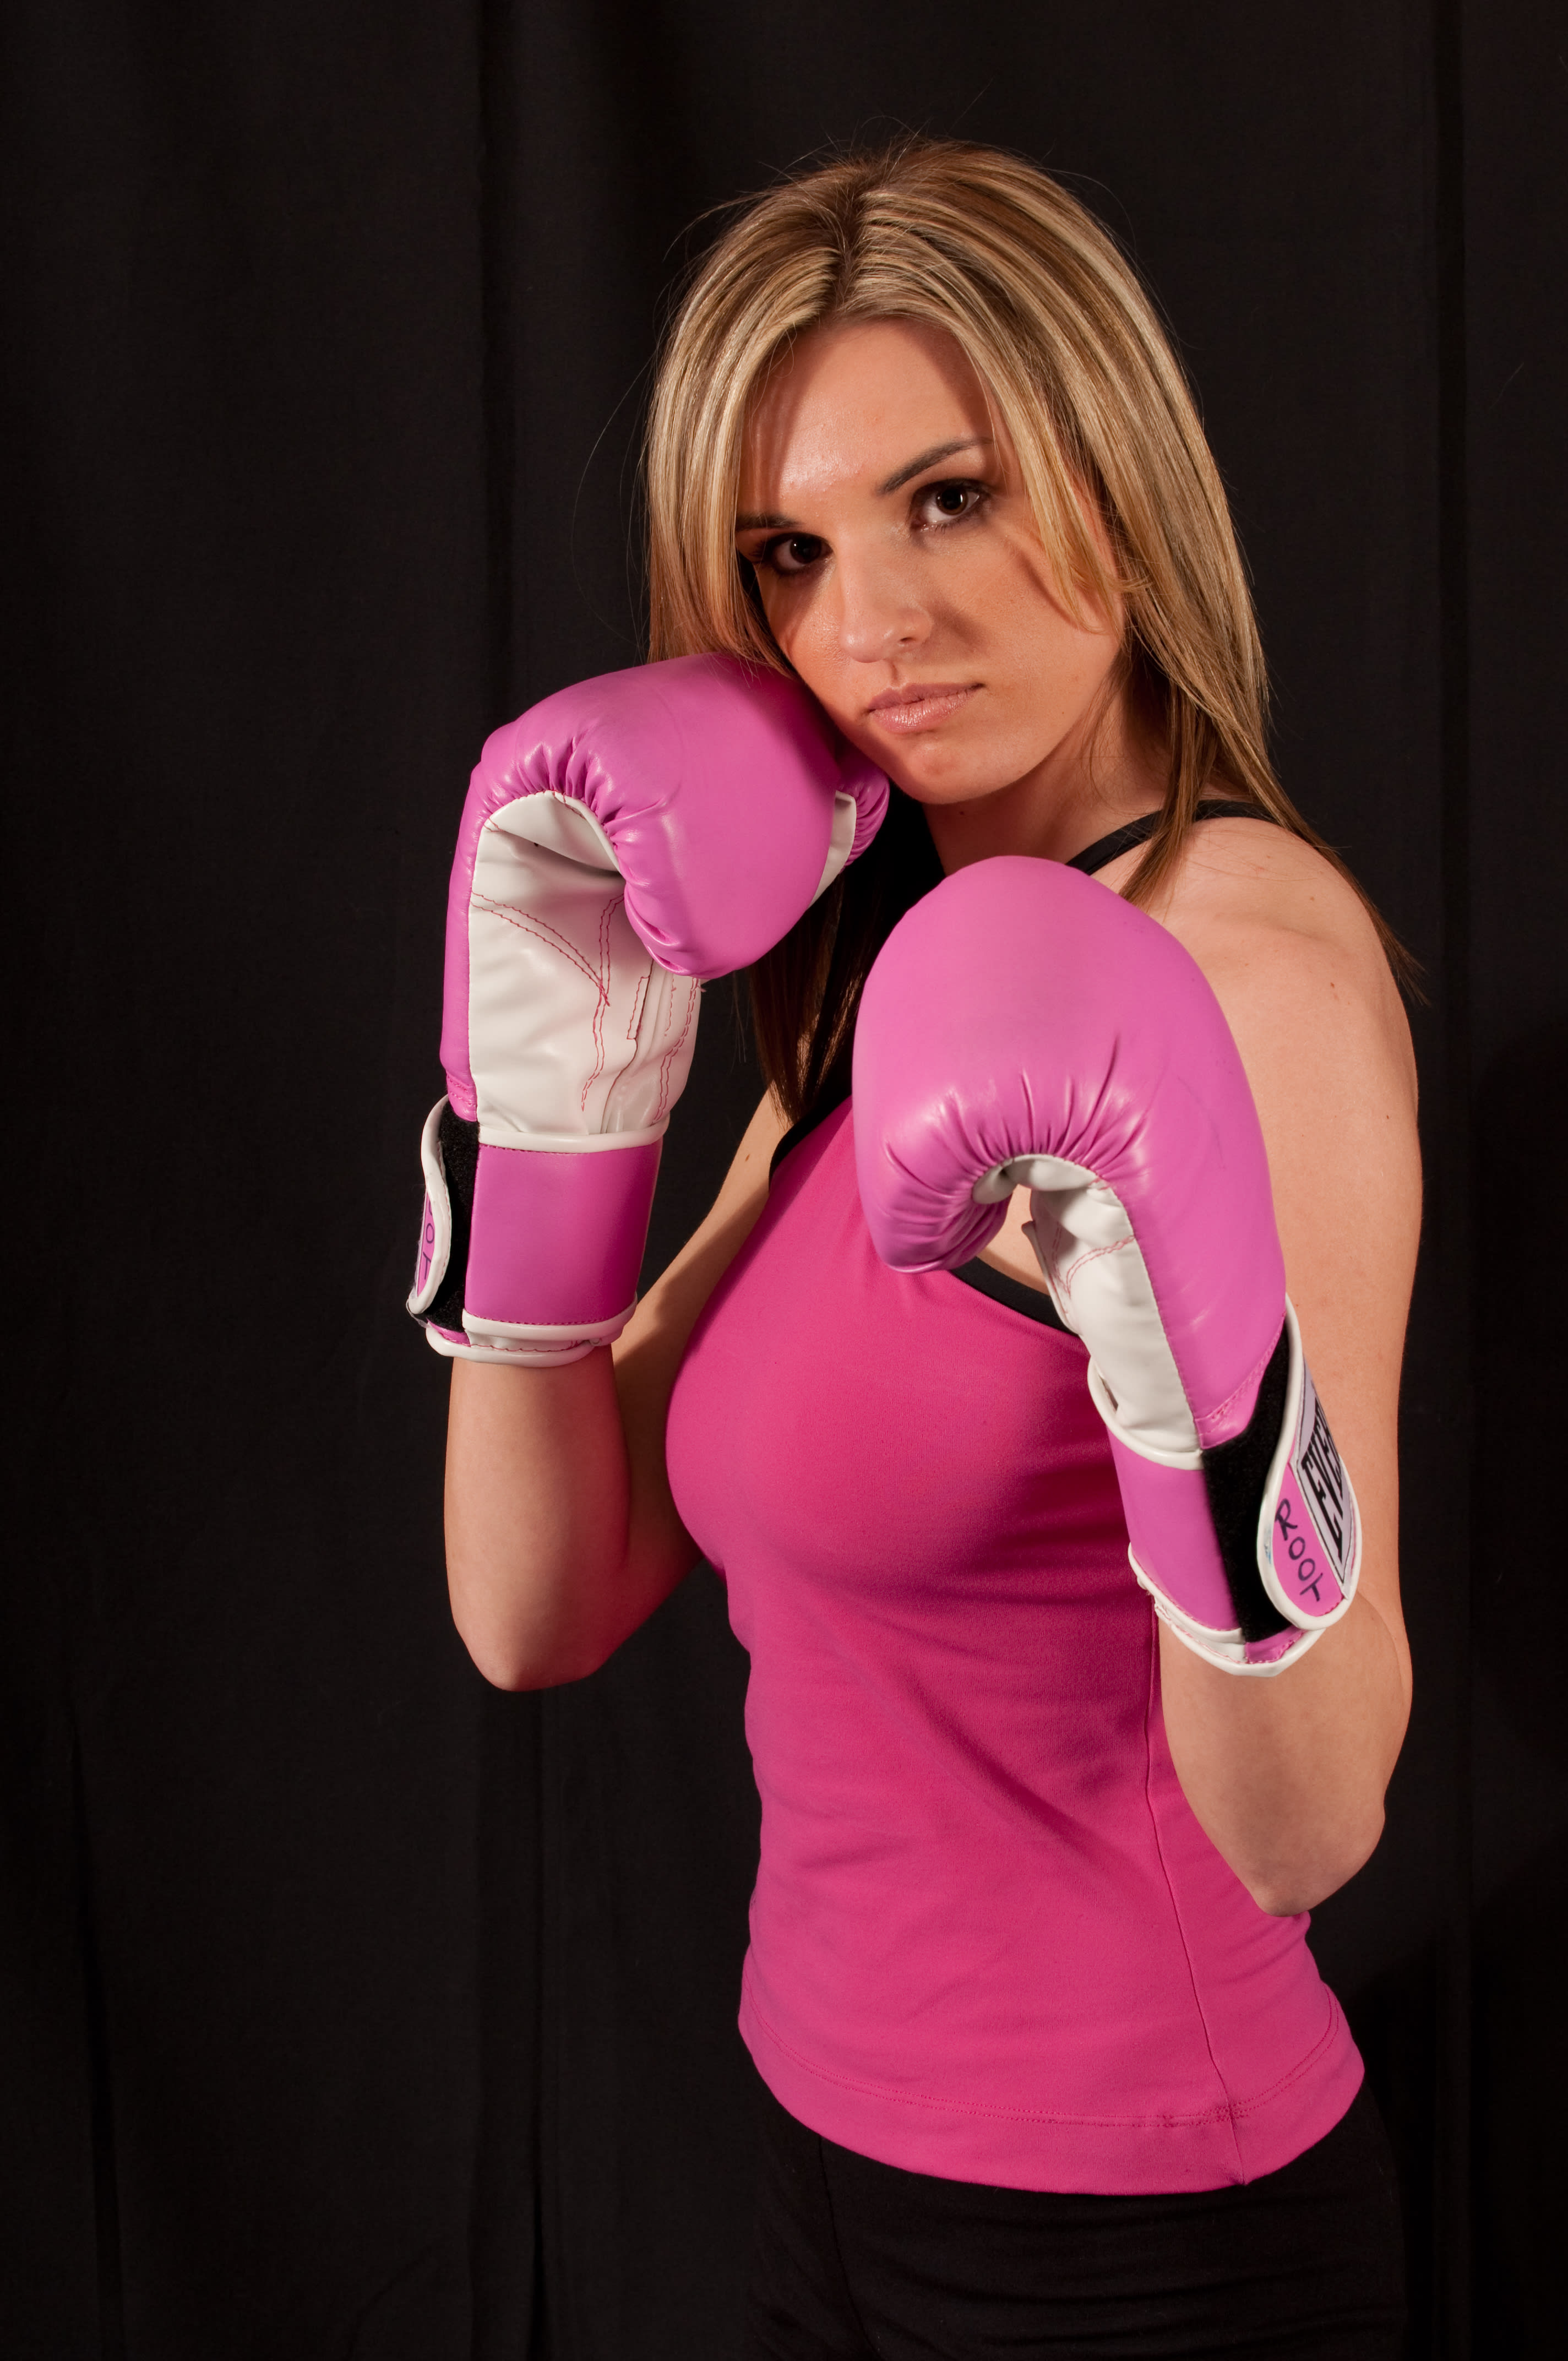 Kimberly Root in Cuyahoga Falls - World Kickboxing Academy